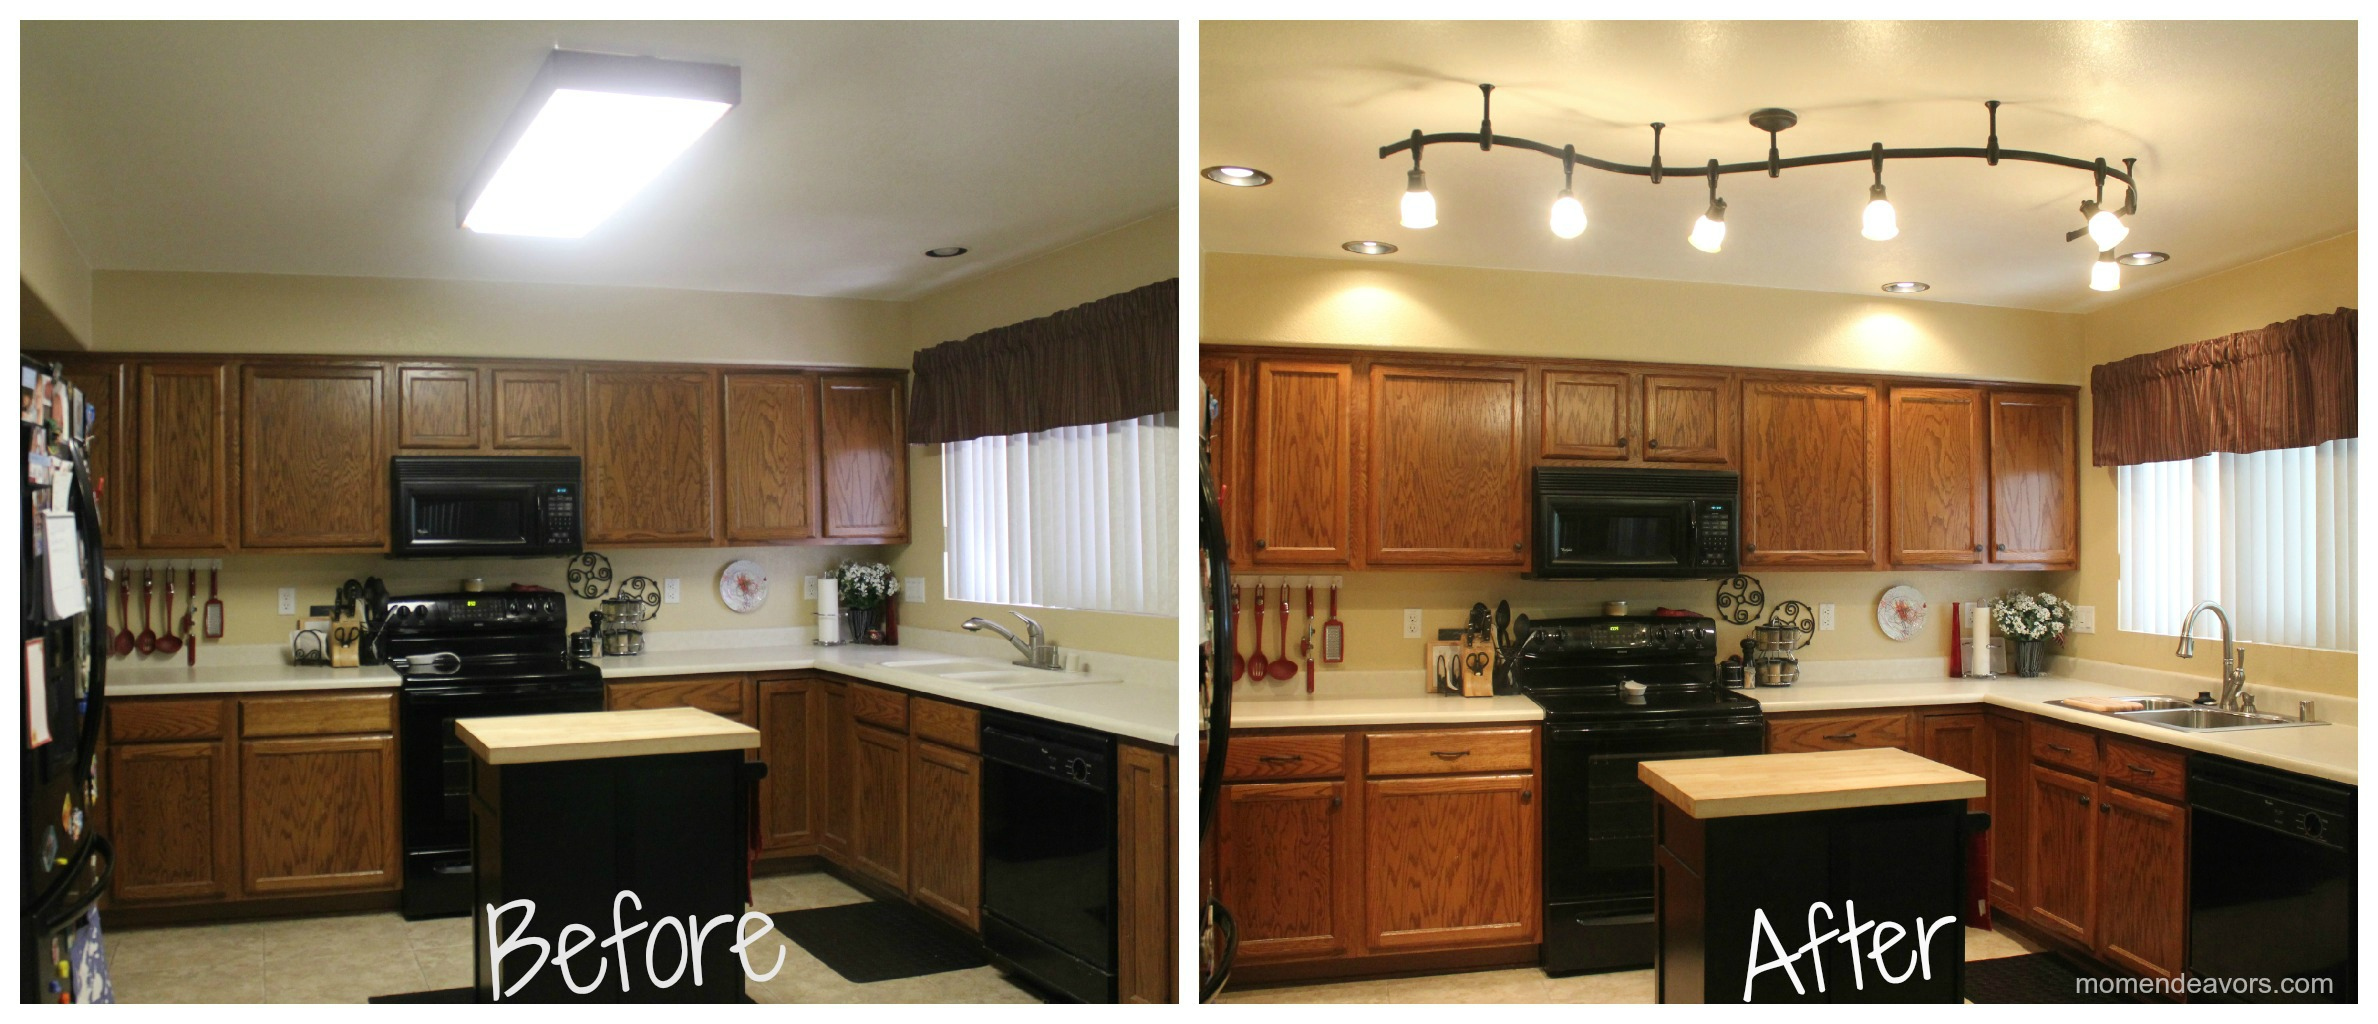 Lighting For Kitchens Lighting For Kitchens It Lighting For Kitchens R Houseofphonicscom